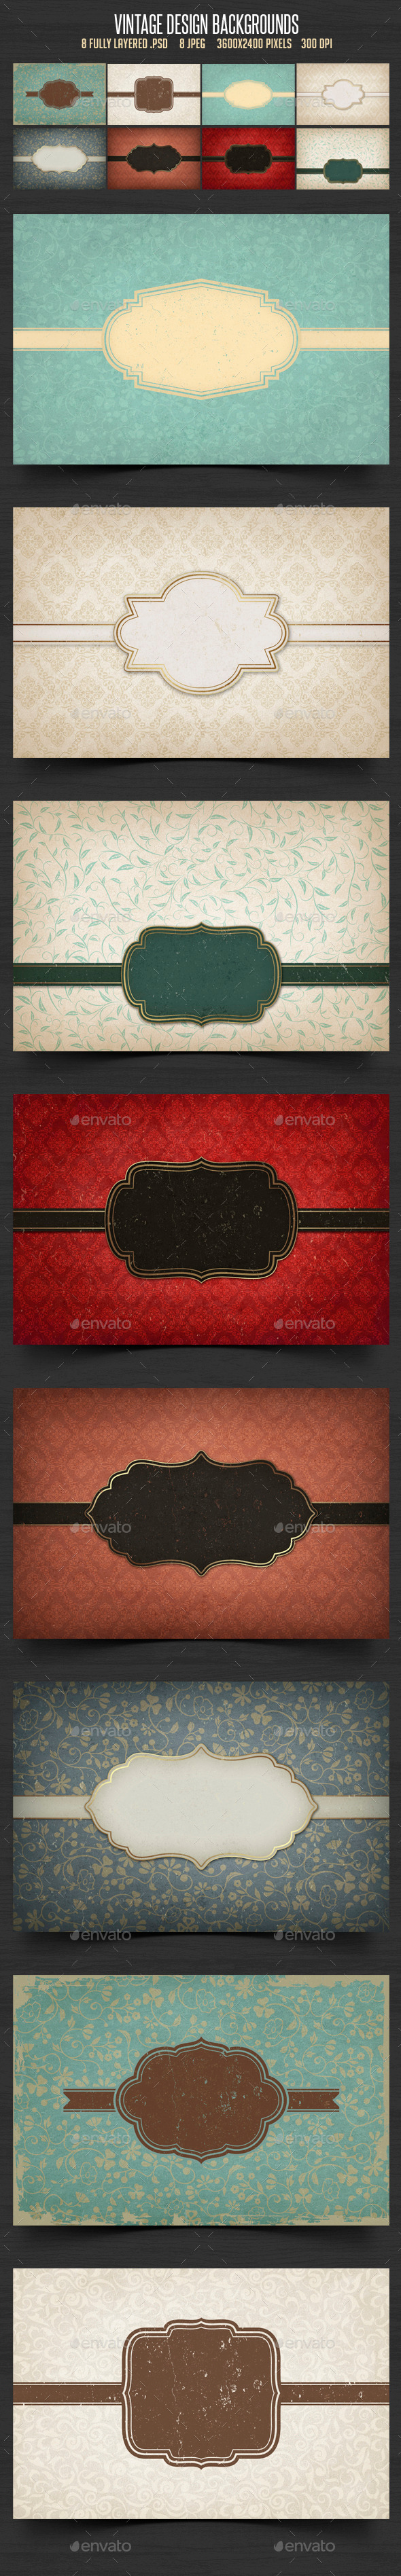 GraphicRiver Vintage Design Backgrounds 10357521